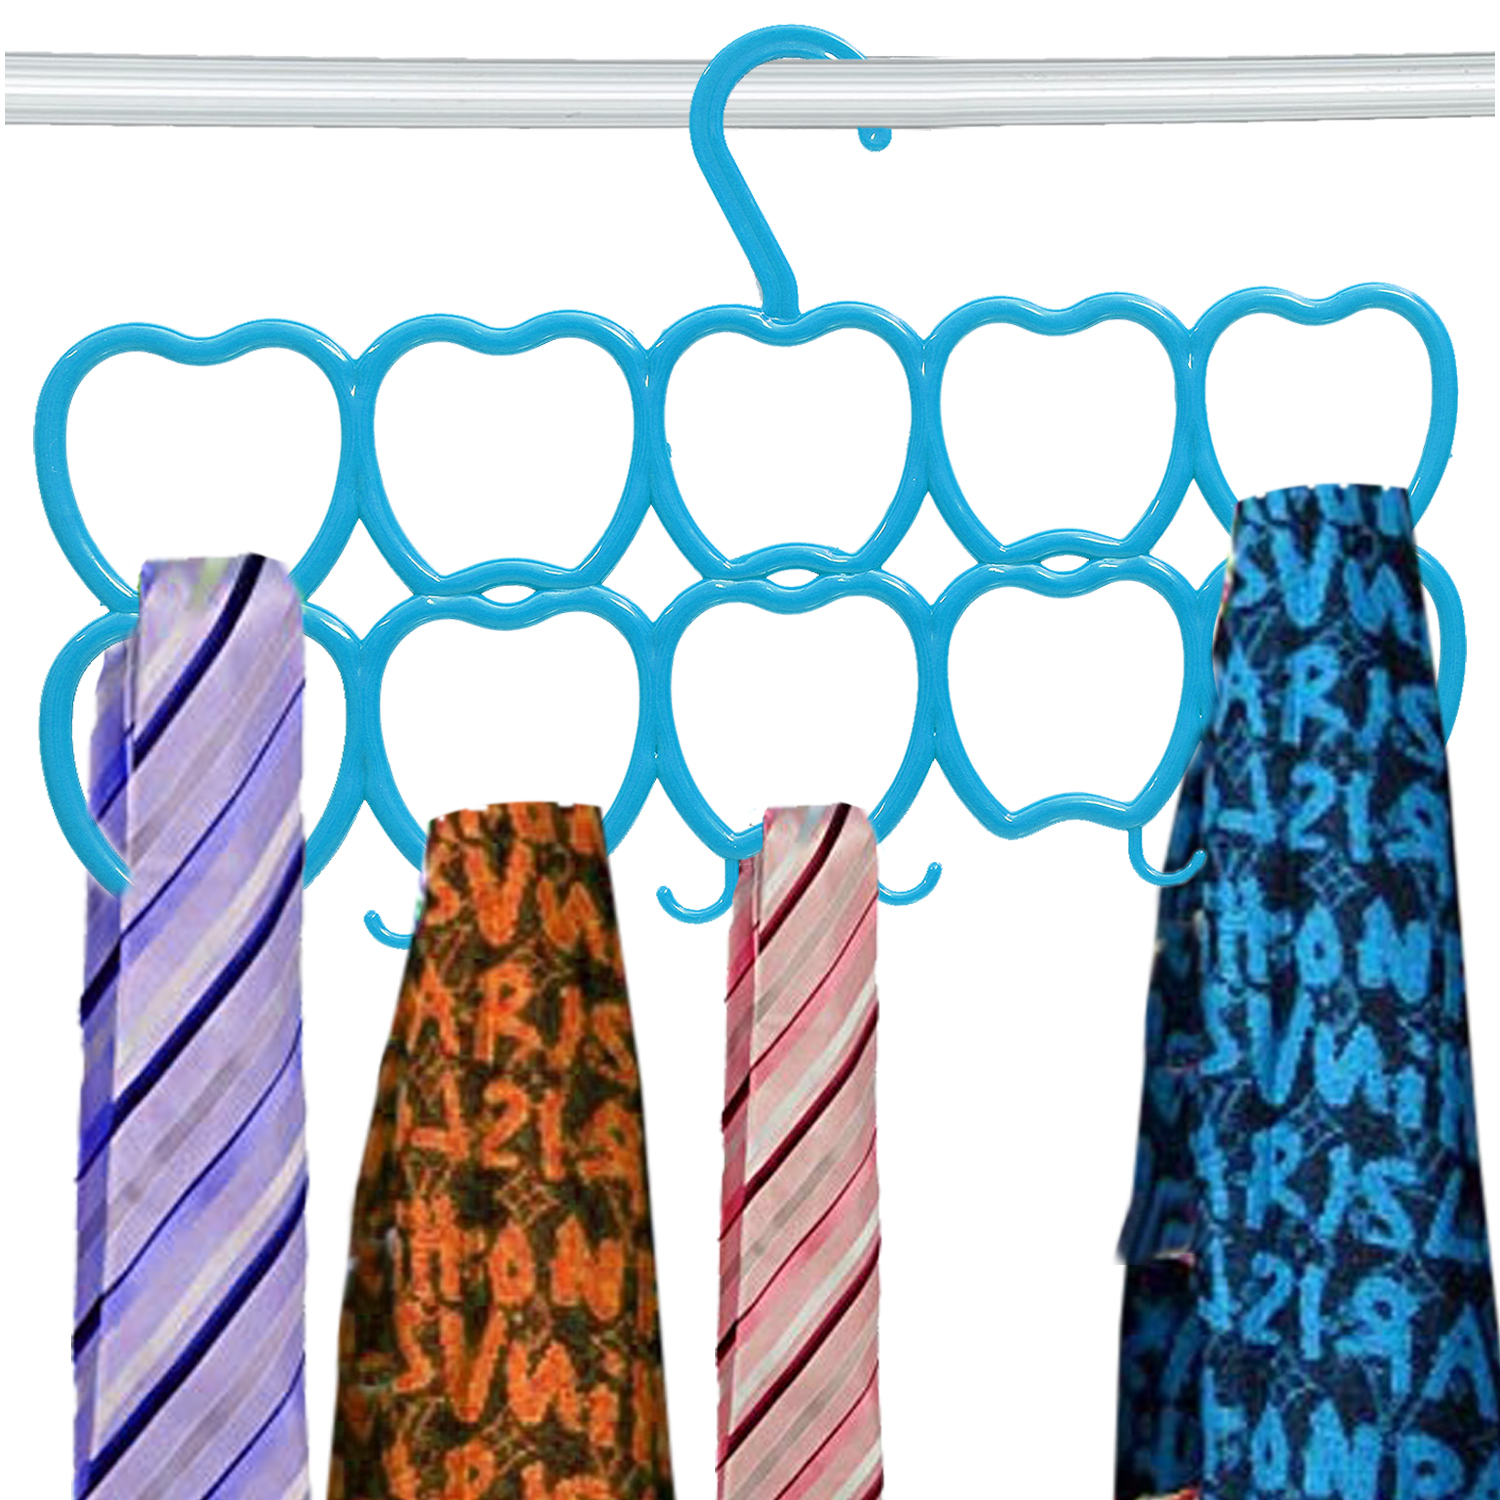 Kuber Industries 10-Circle Plastic Heart Design Hanger for Scarf, Shawl, Tie, Belt, Closet Accessory Wardrobe Organizer (MultiColor) - CTKTC30773